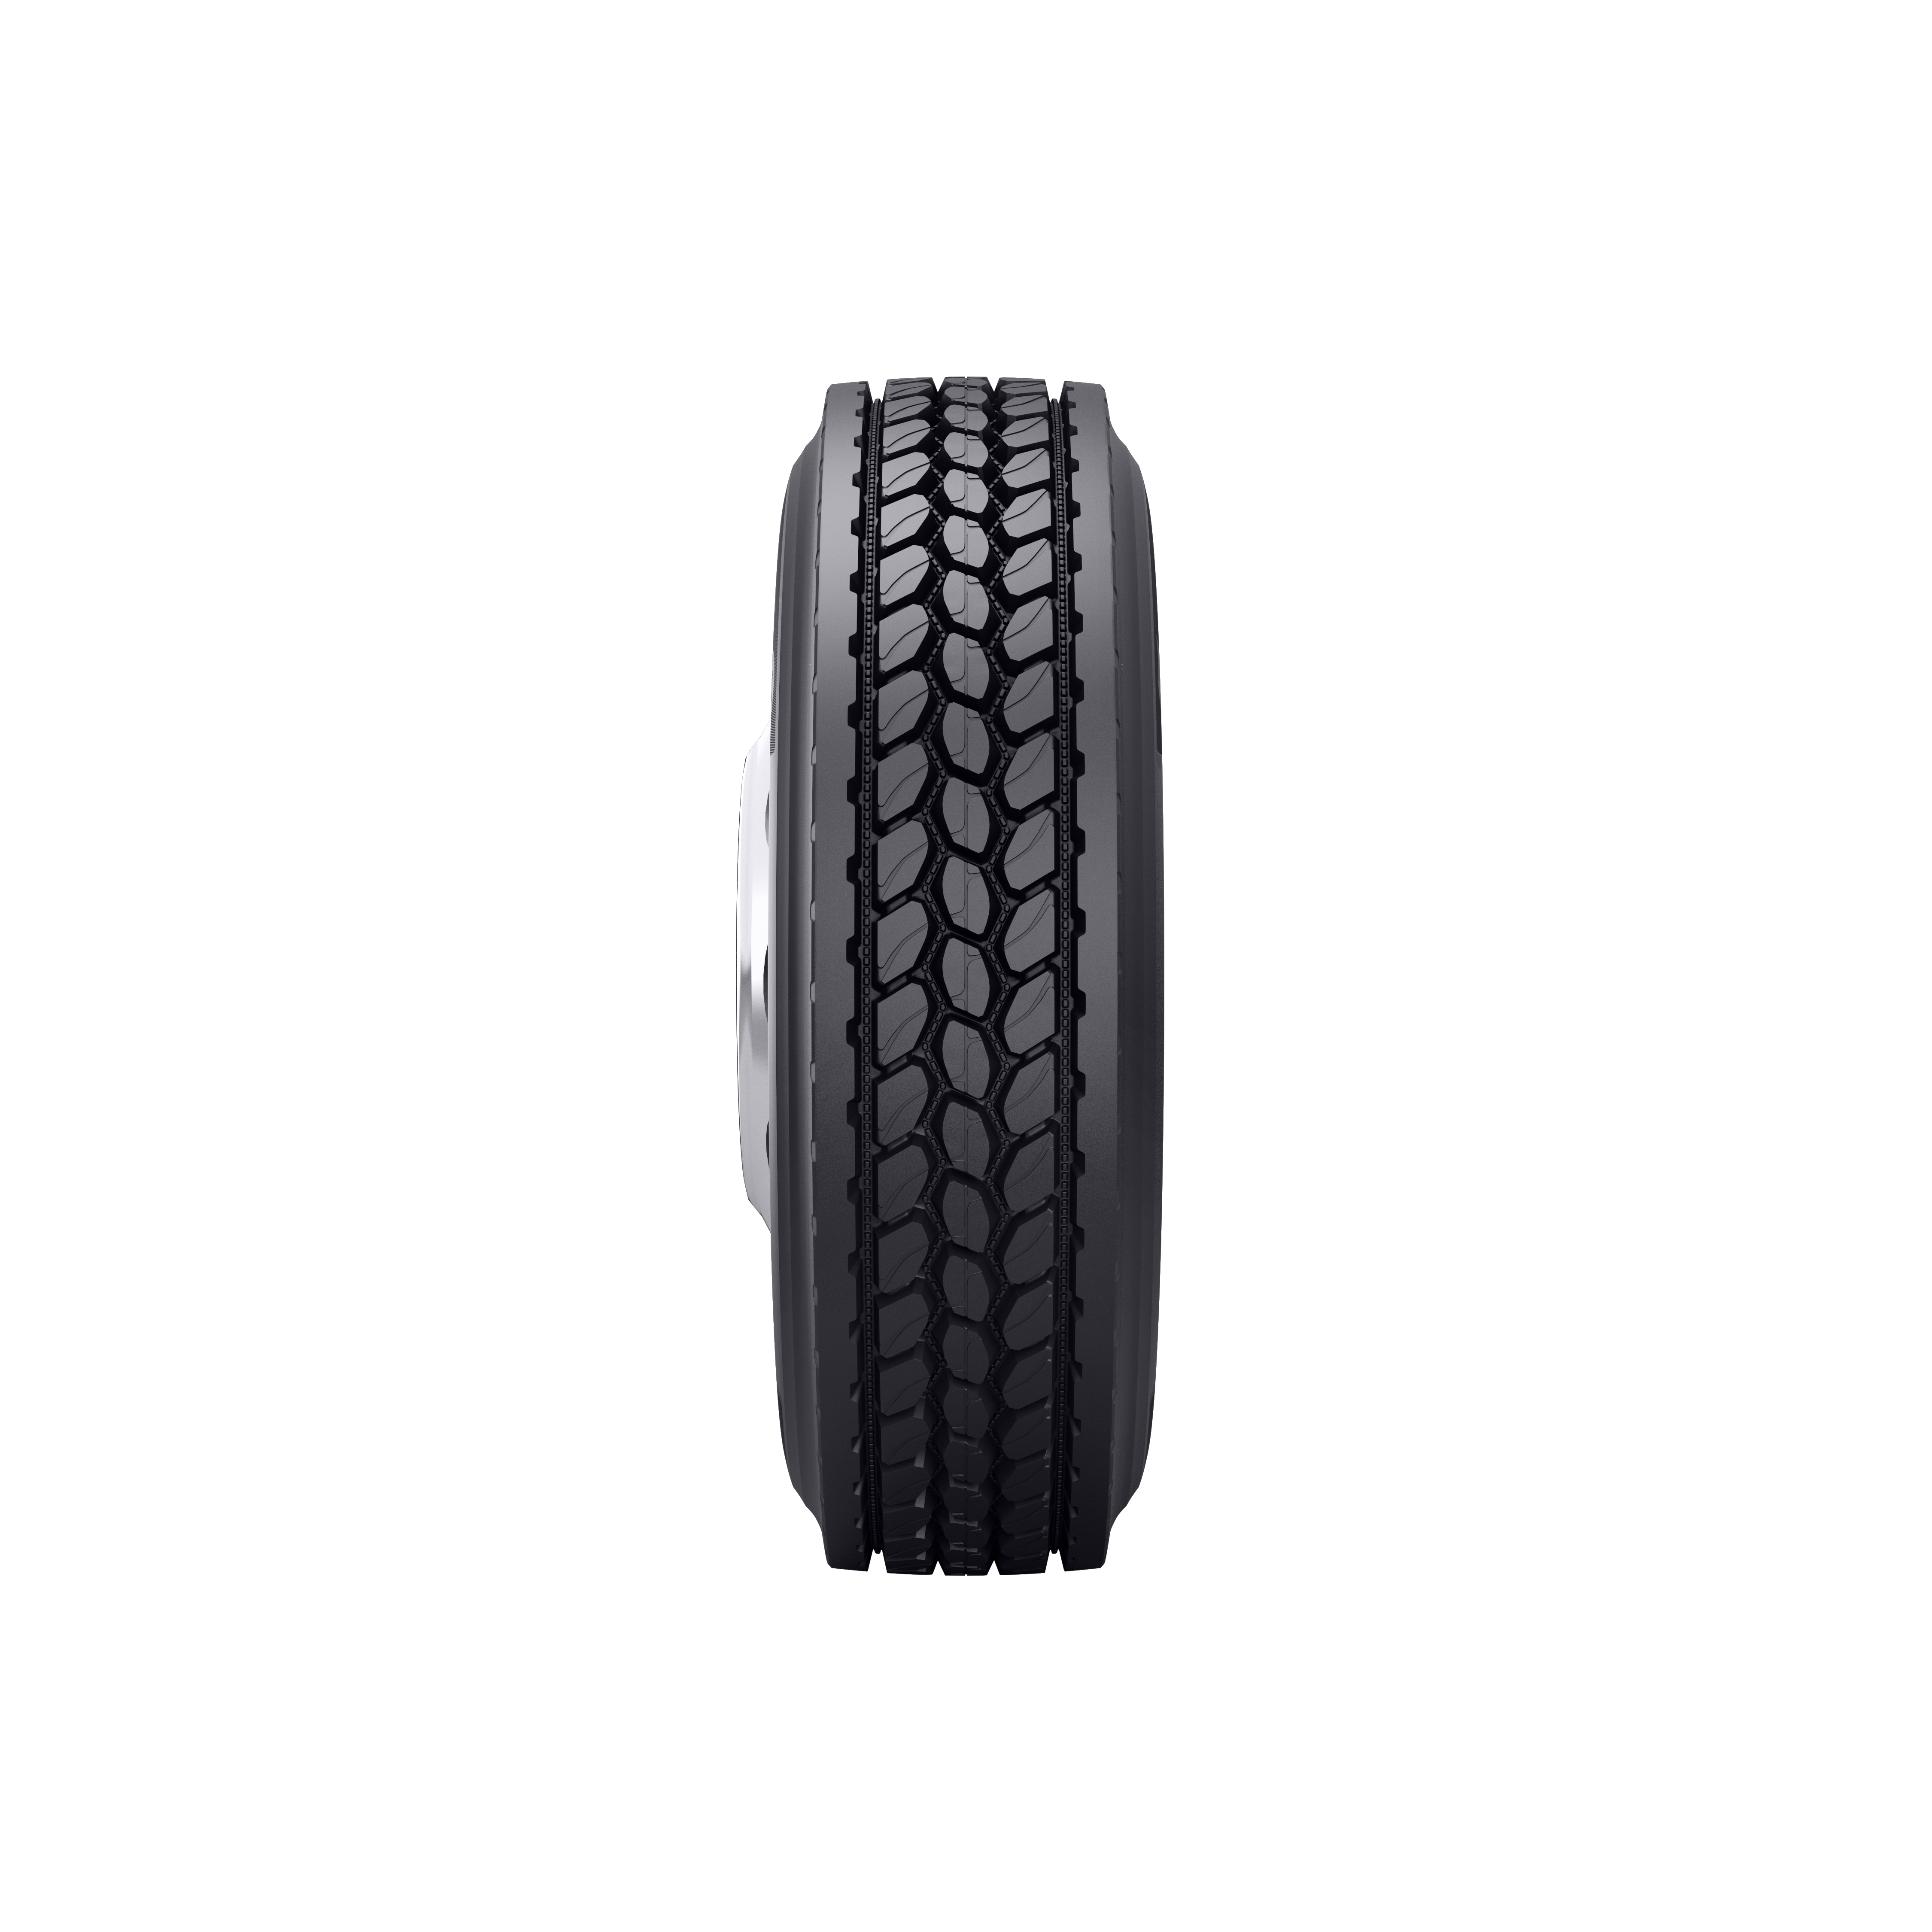 Bandag Expands Tread Offerings for Drive Applications